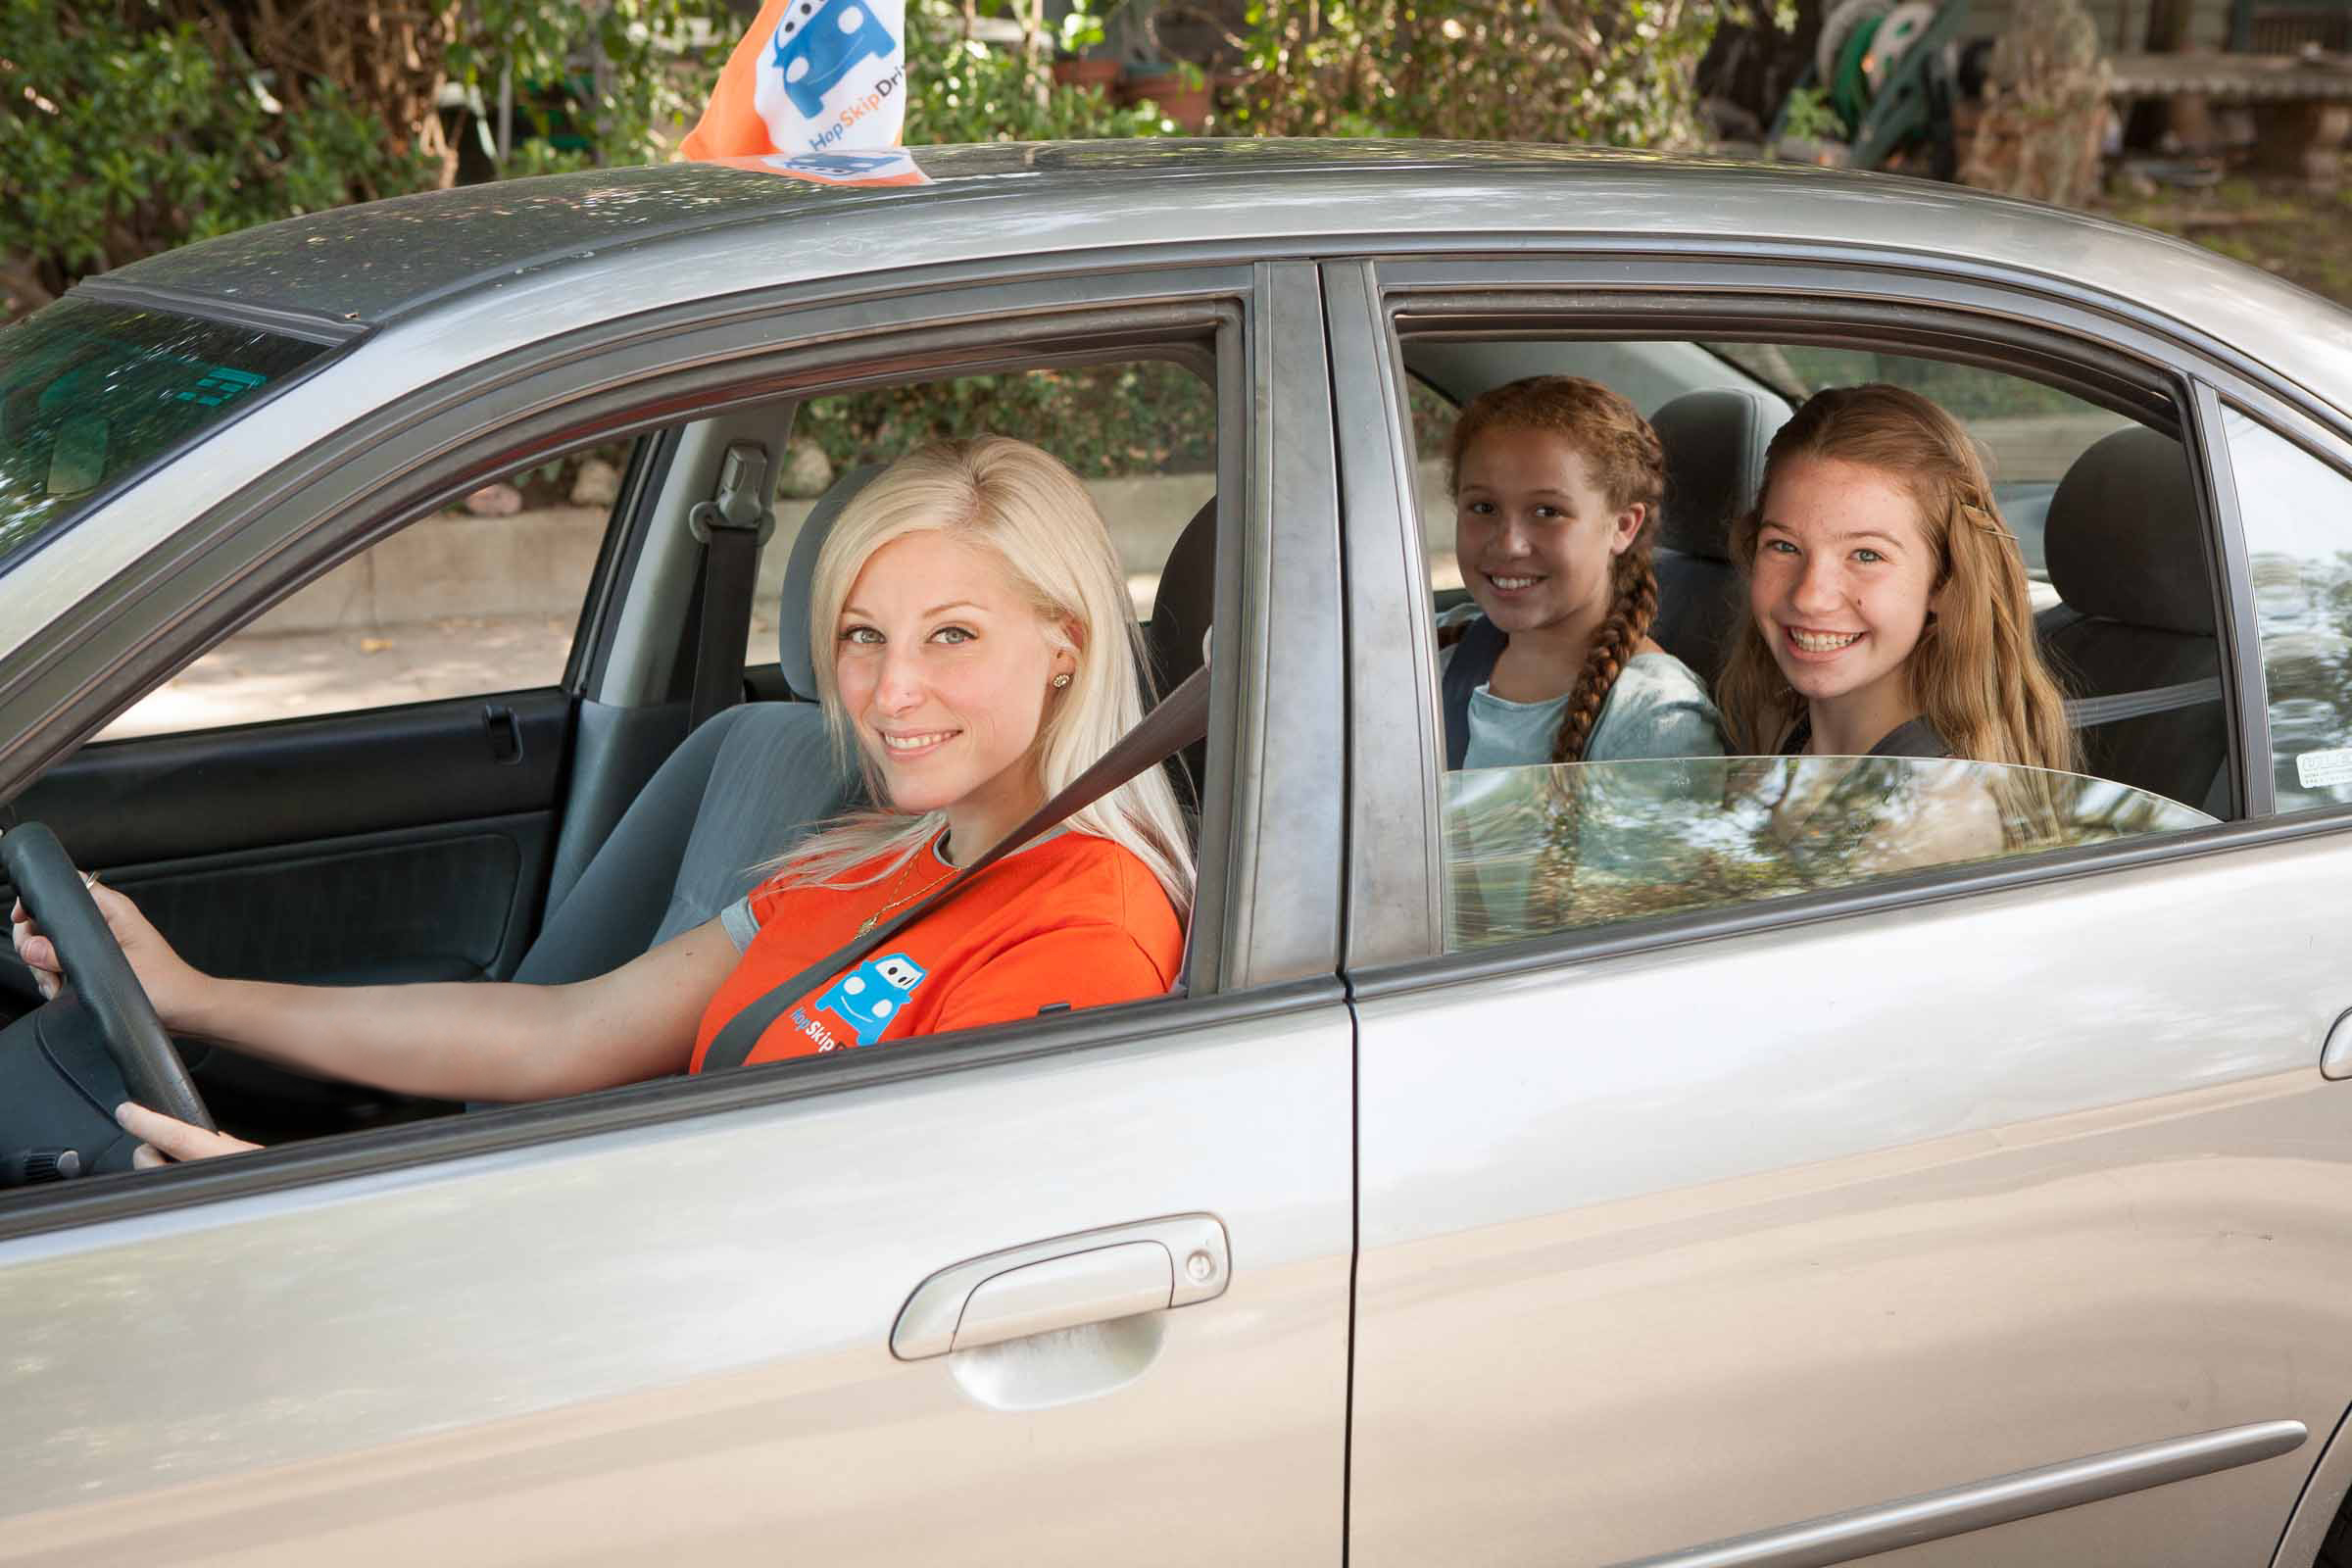 HopSkipDrive CareDriver with passengers.